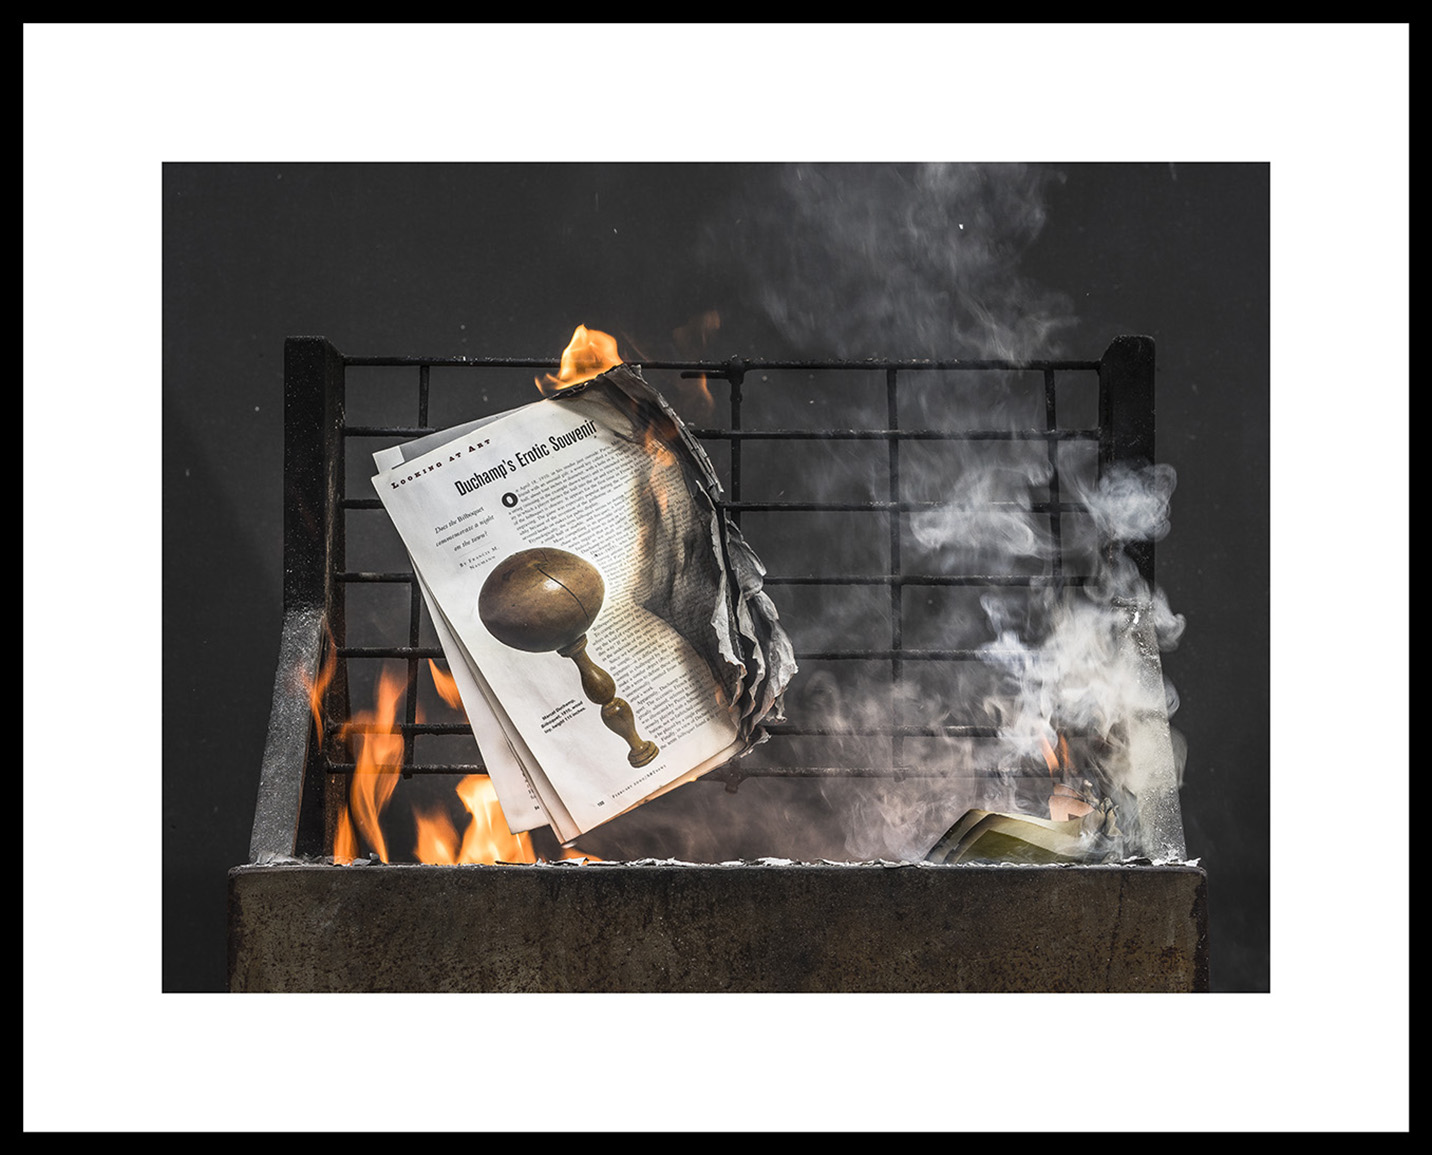 BWGPS_Gregory Perkel_Savonarola Suite_AN Feb 2000 #1545F, 2019_Archival ink jet print on Epson exhibition fiber paper_Framed_Edition 5_2AP_�3000_Courtesy of the Artist and Black & White Project Spac.jpg